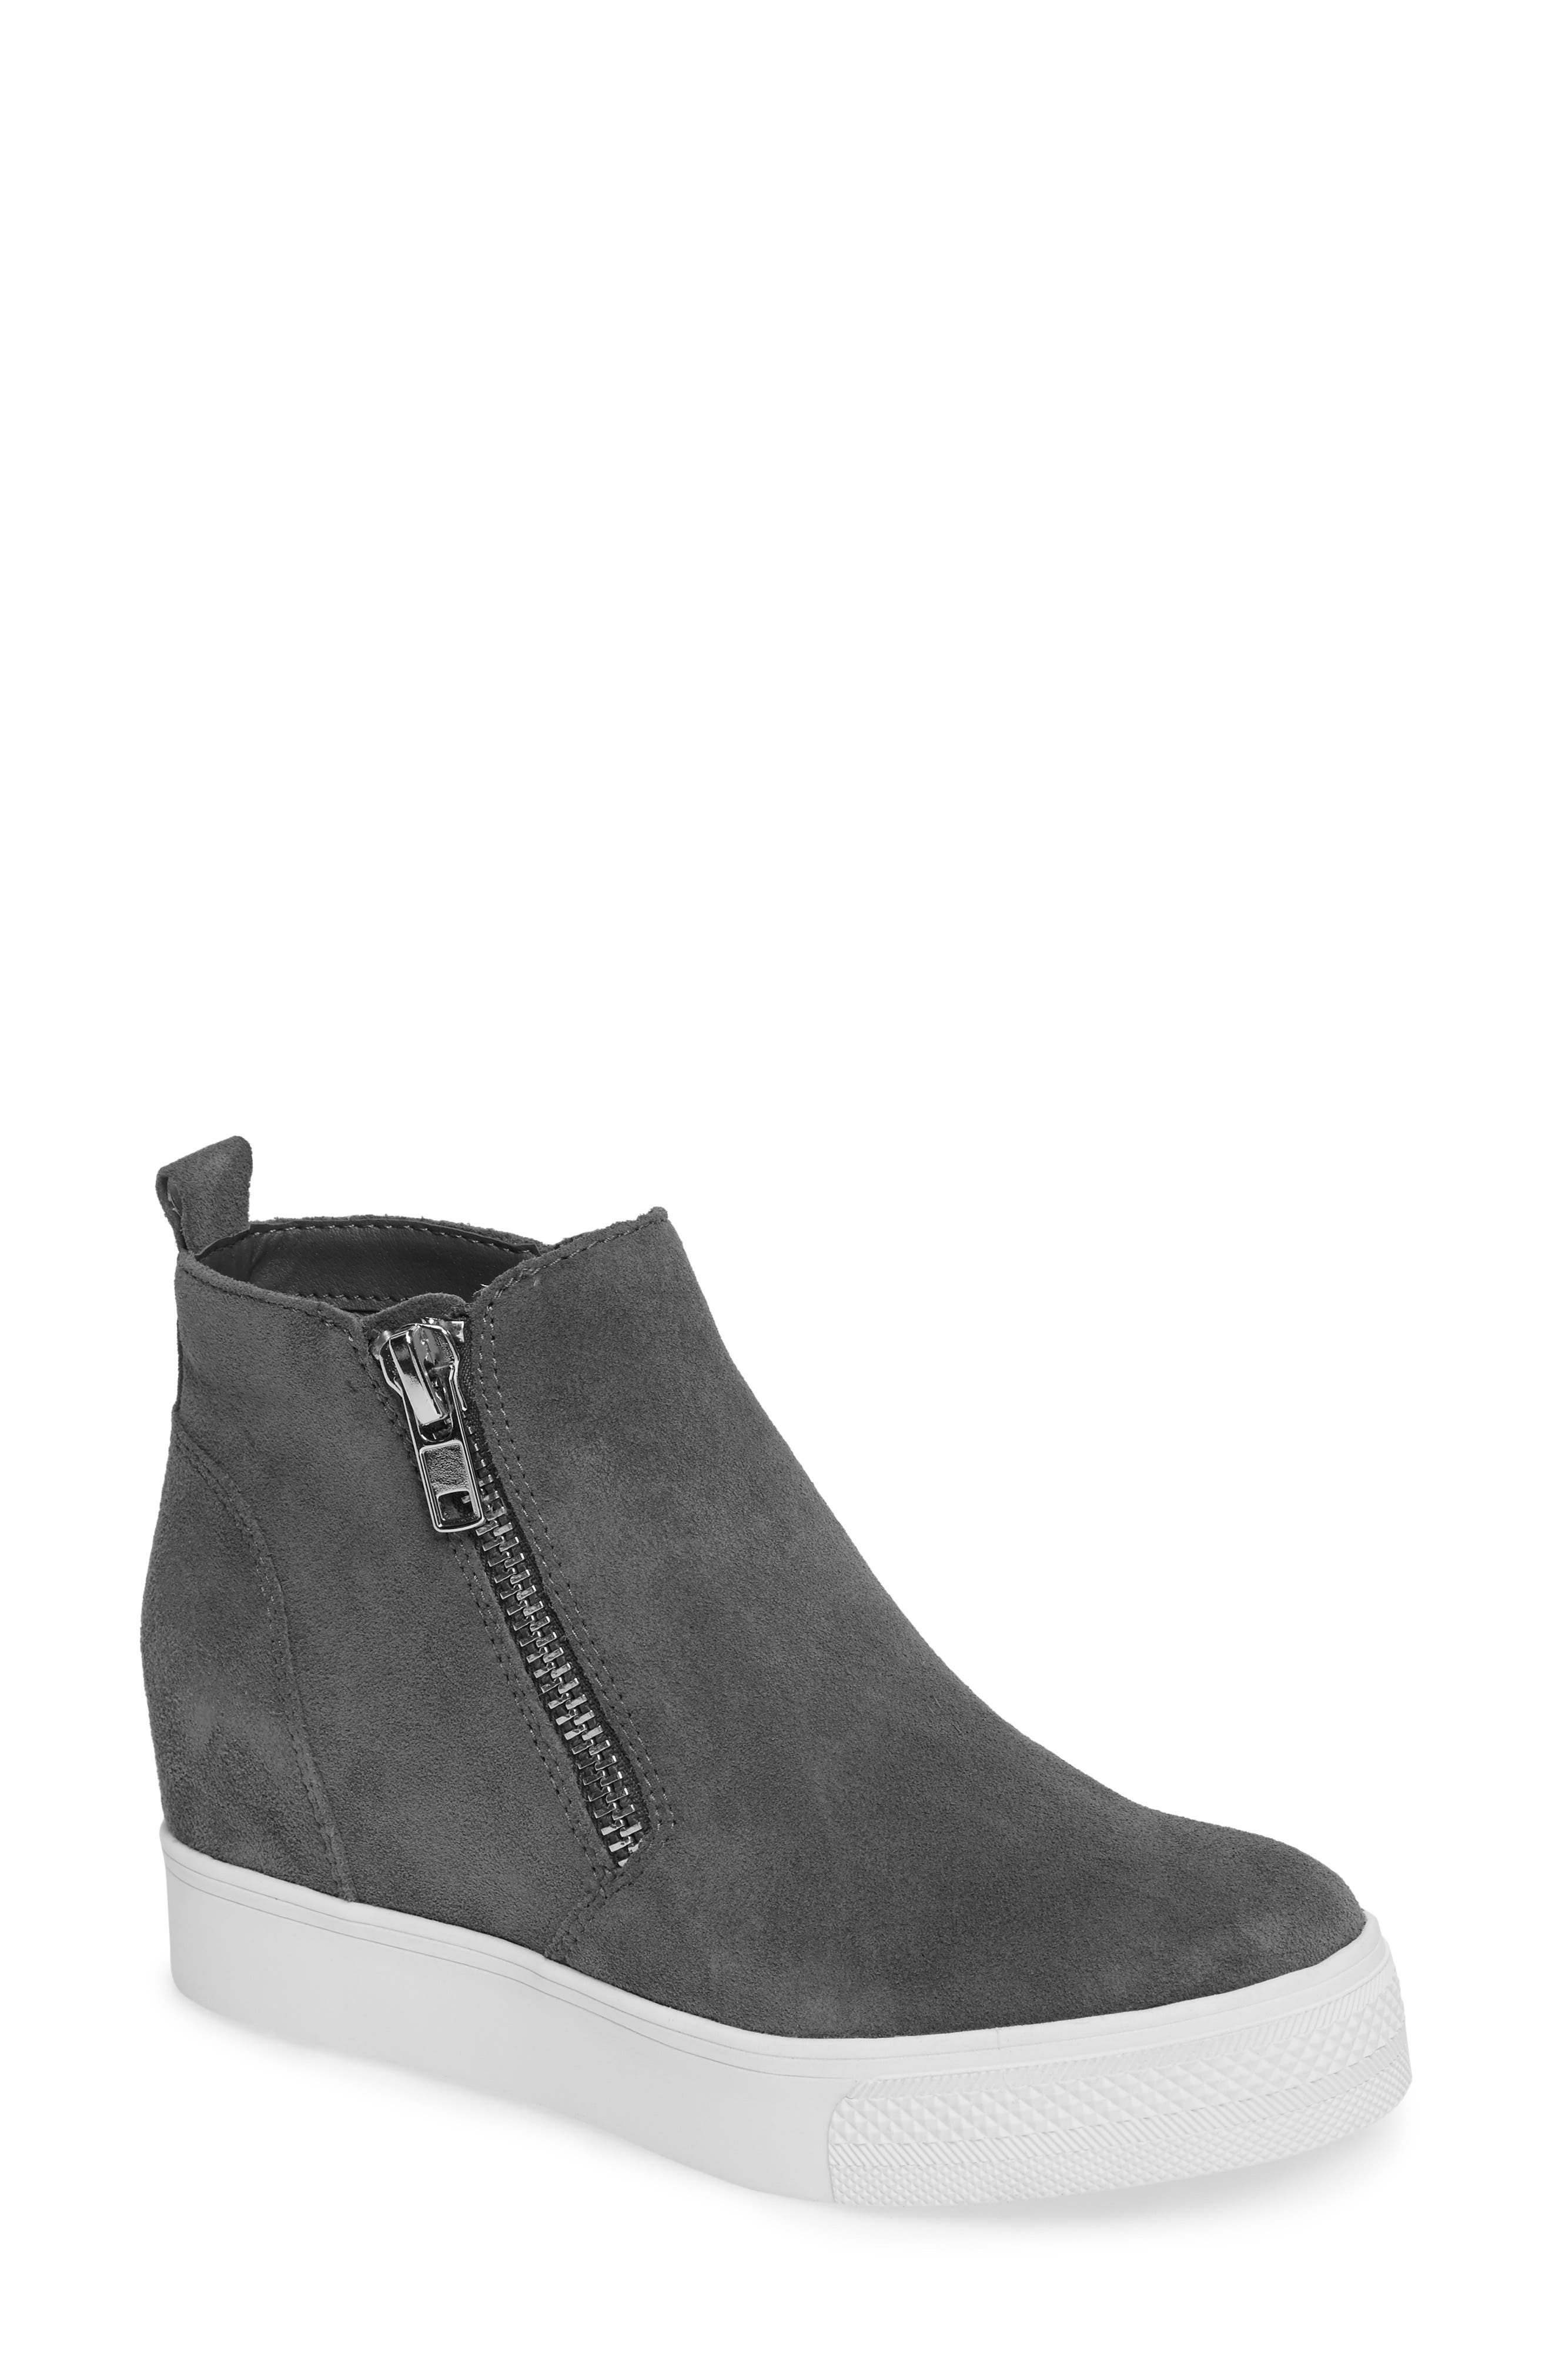 Steve Madden Wedgie High Top Platform Sneaker (Women)